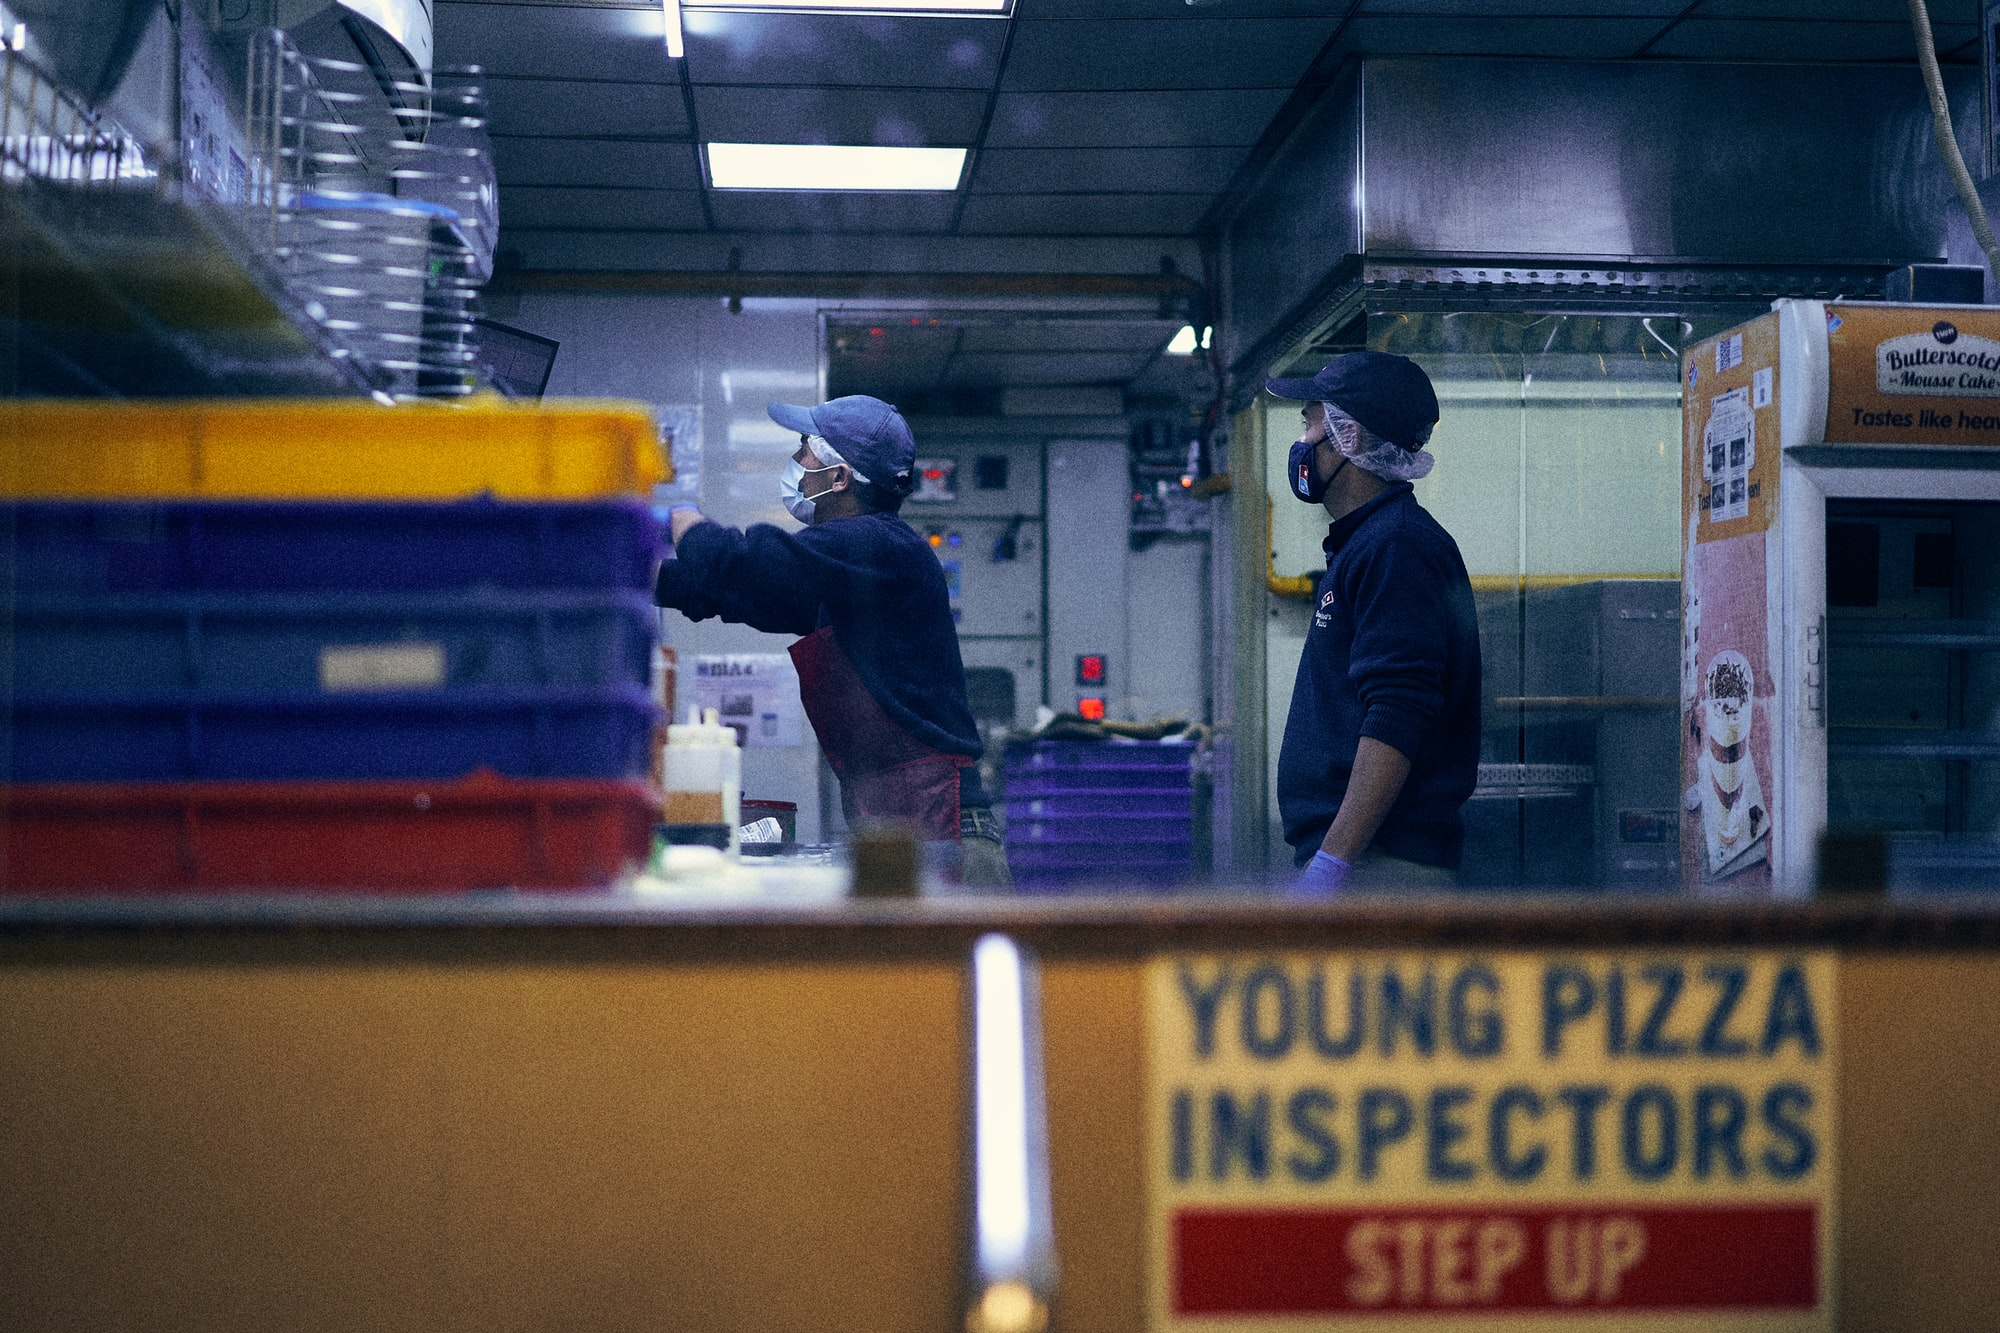 Two men wearing masks working at Domino's